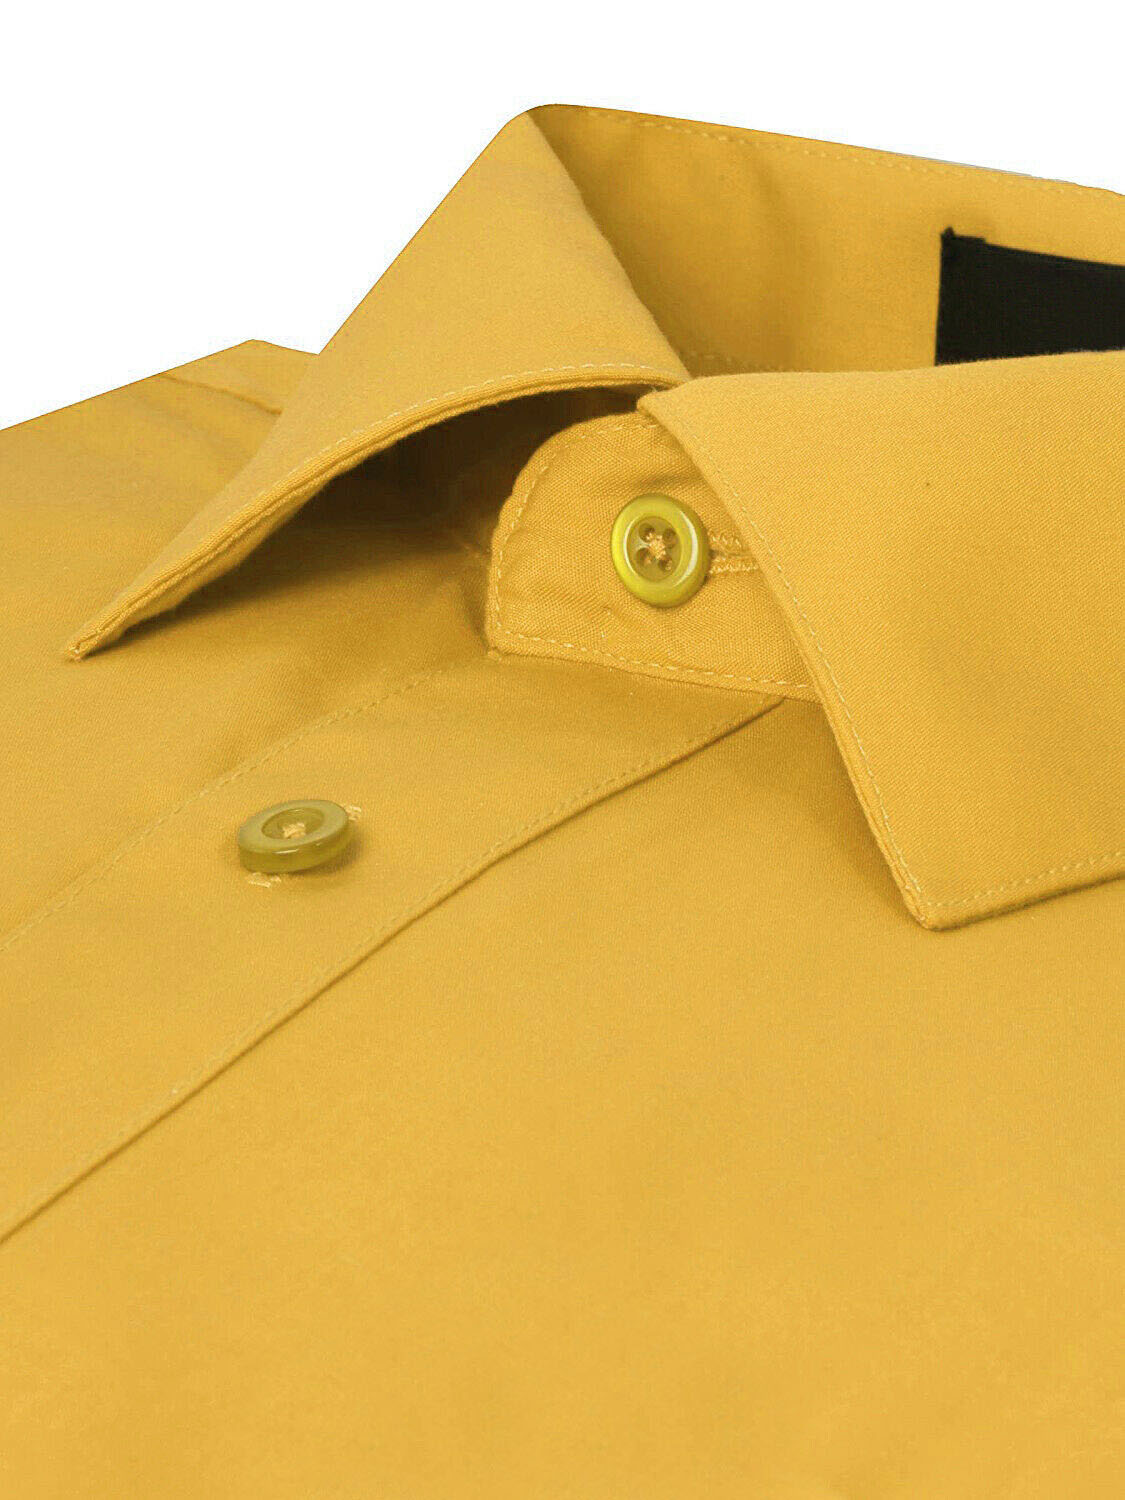 Omega-Italy-Men-039-s-Premium-Slim-Fit-Button-Up-Long-Sleeve-Solid-Color-Dress-Shirt thumbnail 30